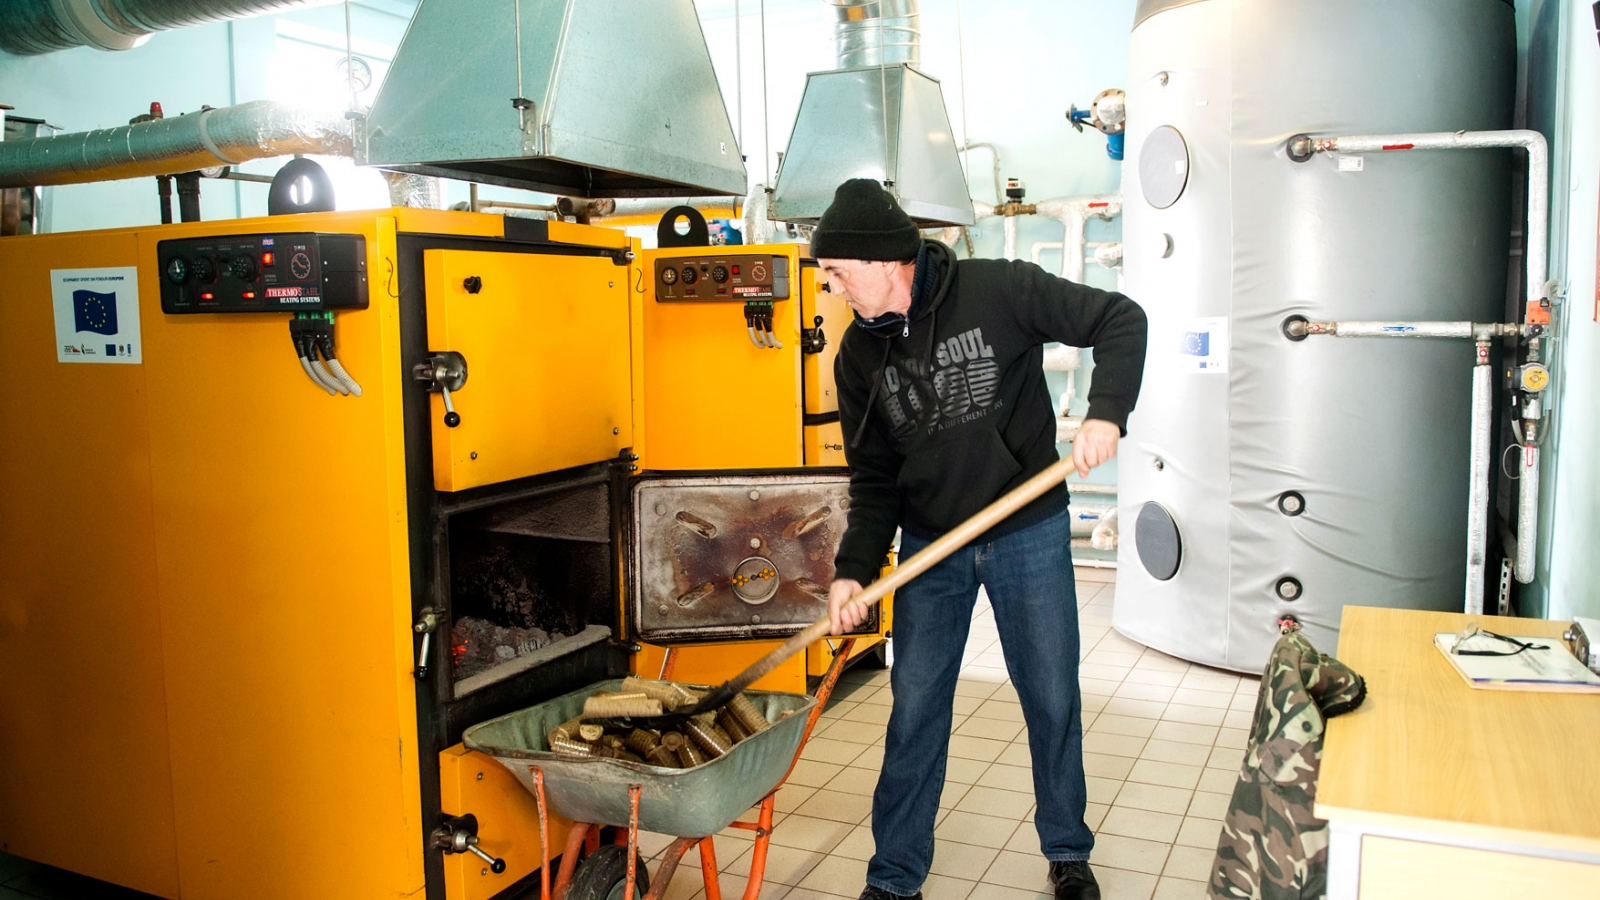 Vasilii Gaina throws pellets into a biomass boiler.